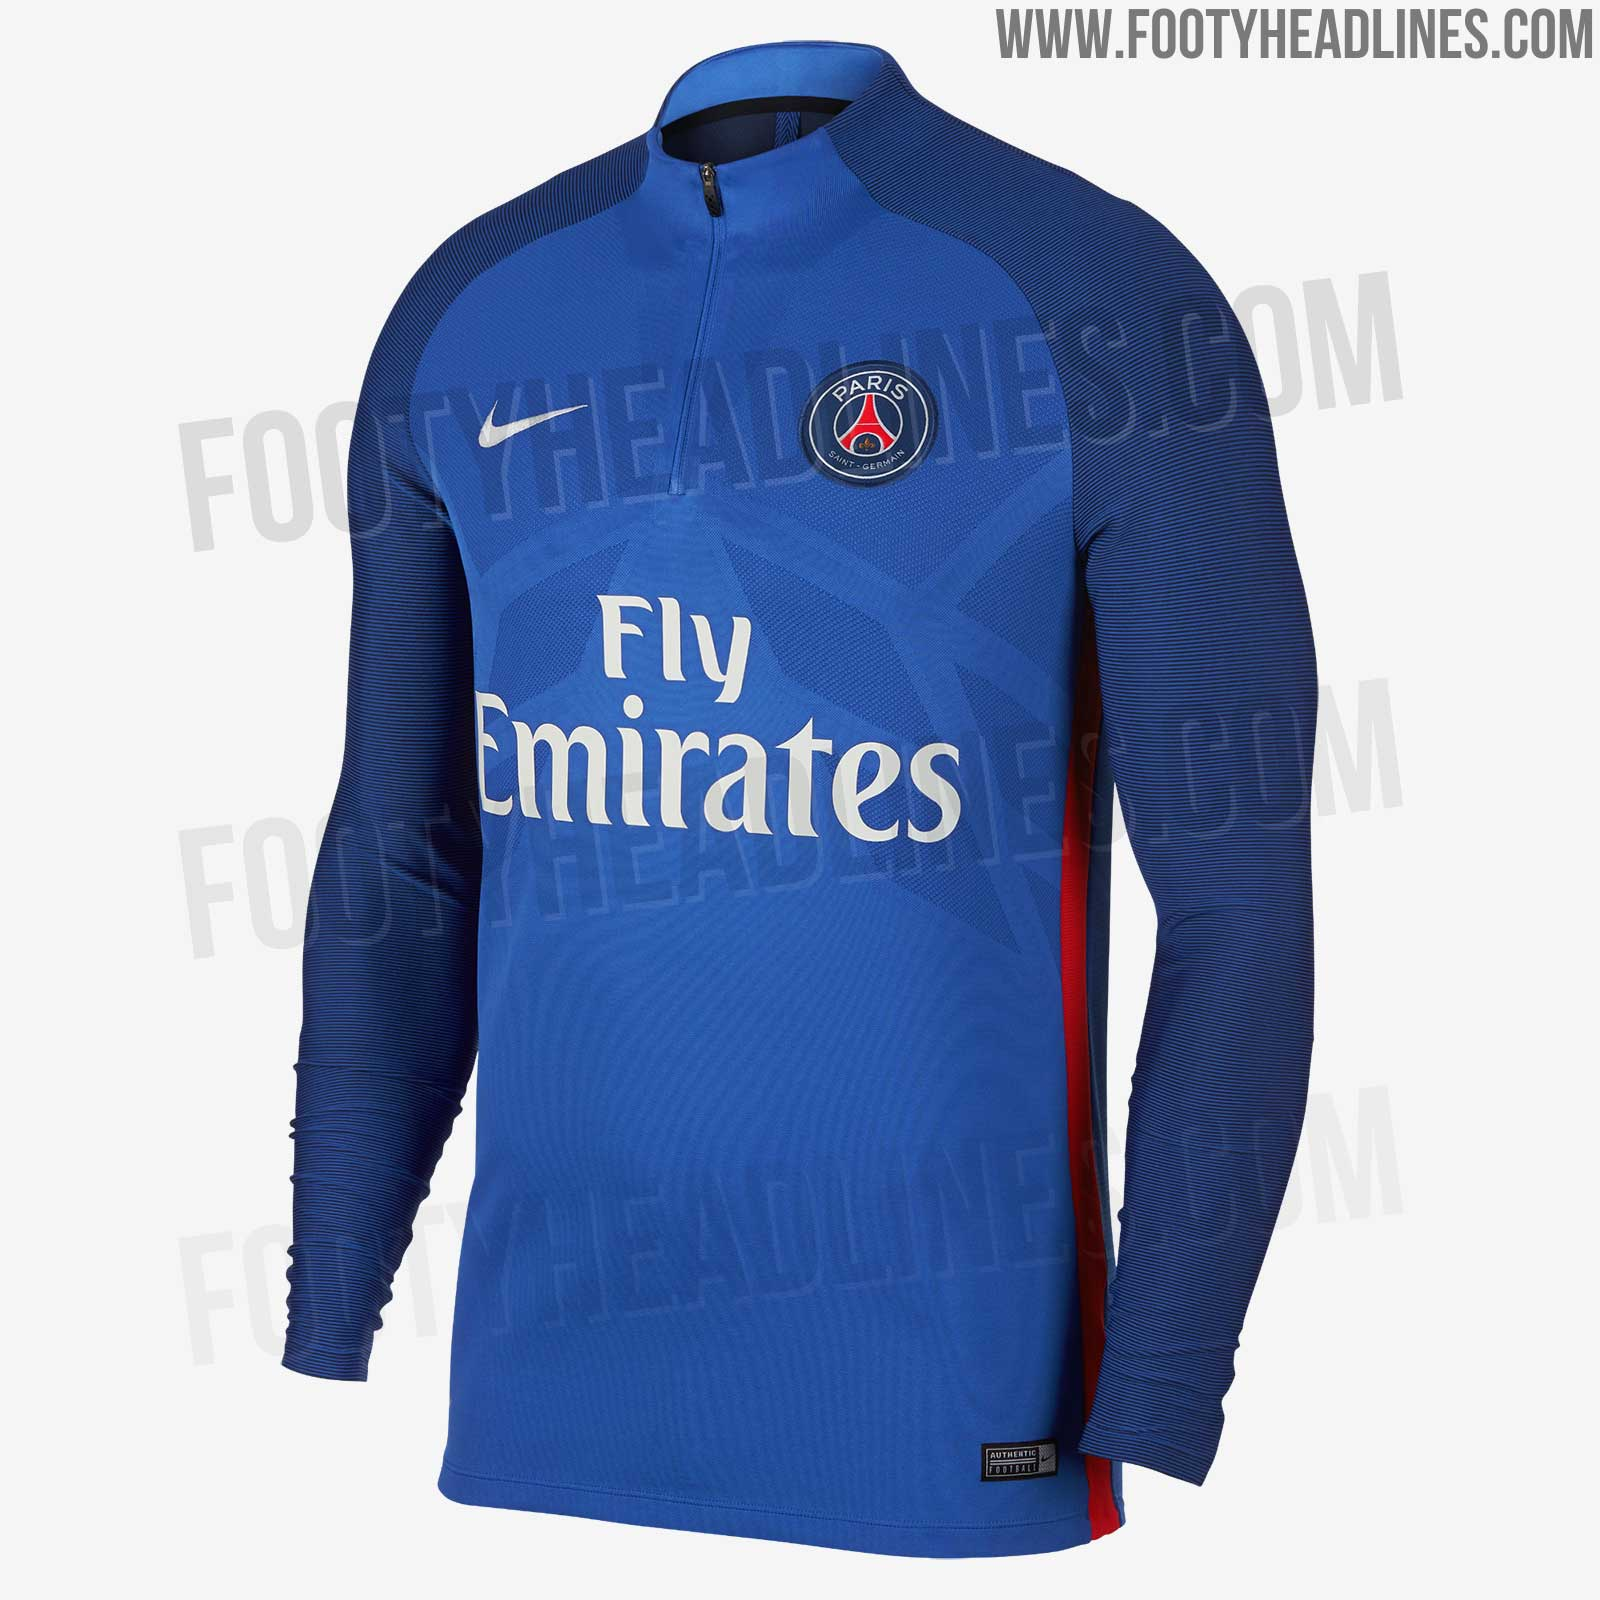 Classy Nike PSG 2018 Vapor Aeroswift Strike Training Kit